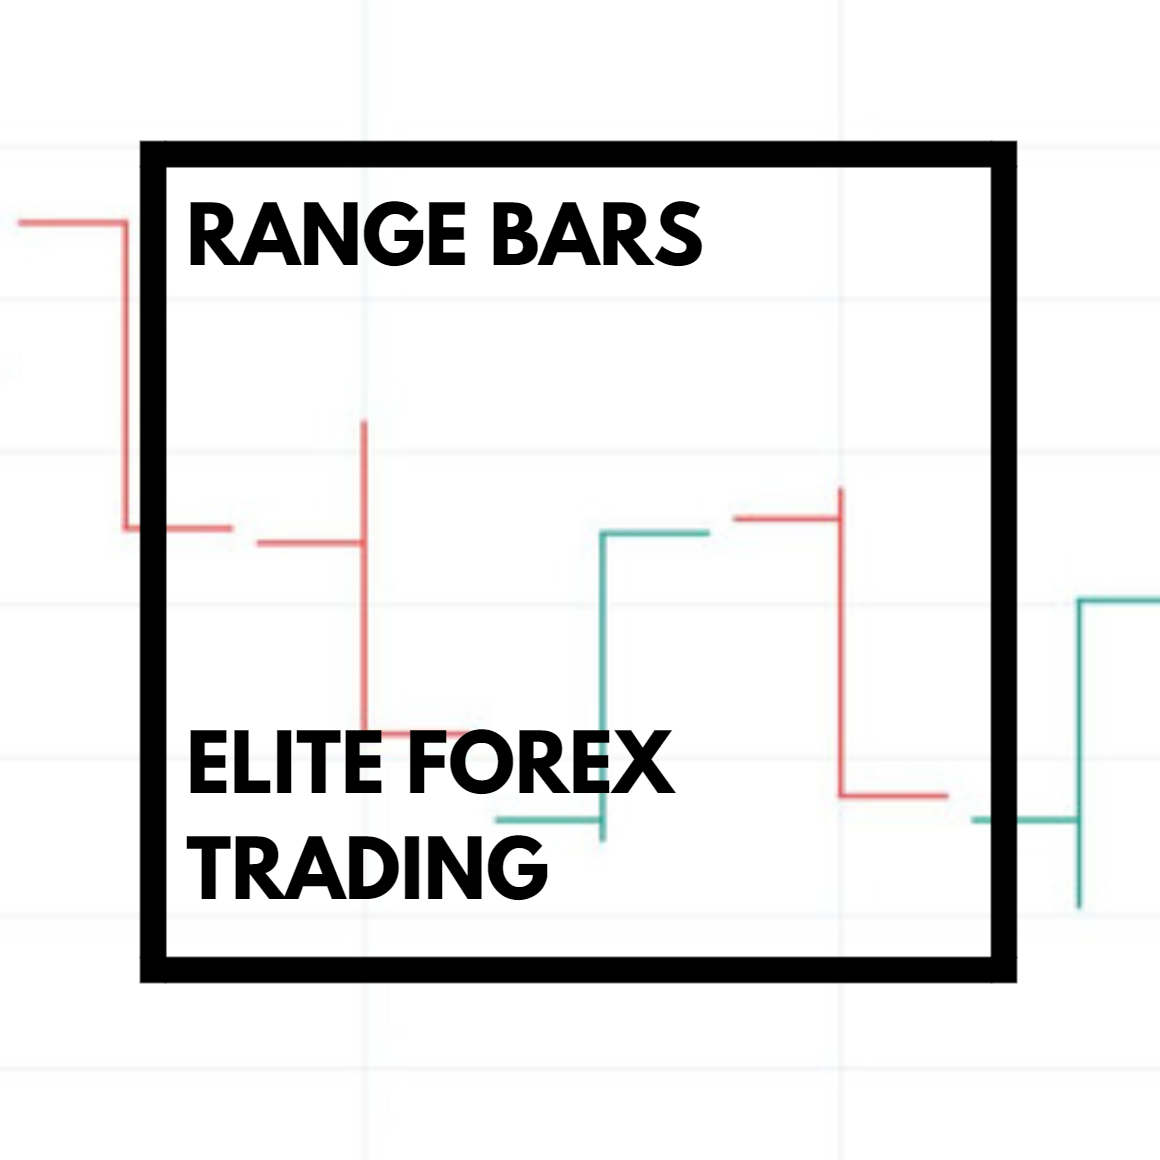 Trading forex with constant range bars